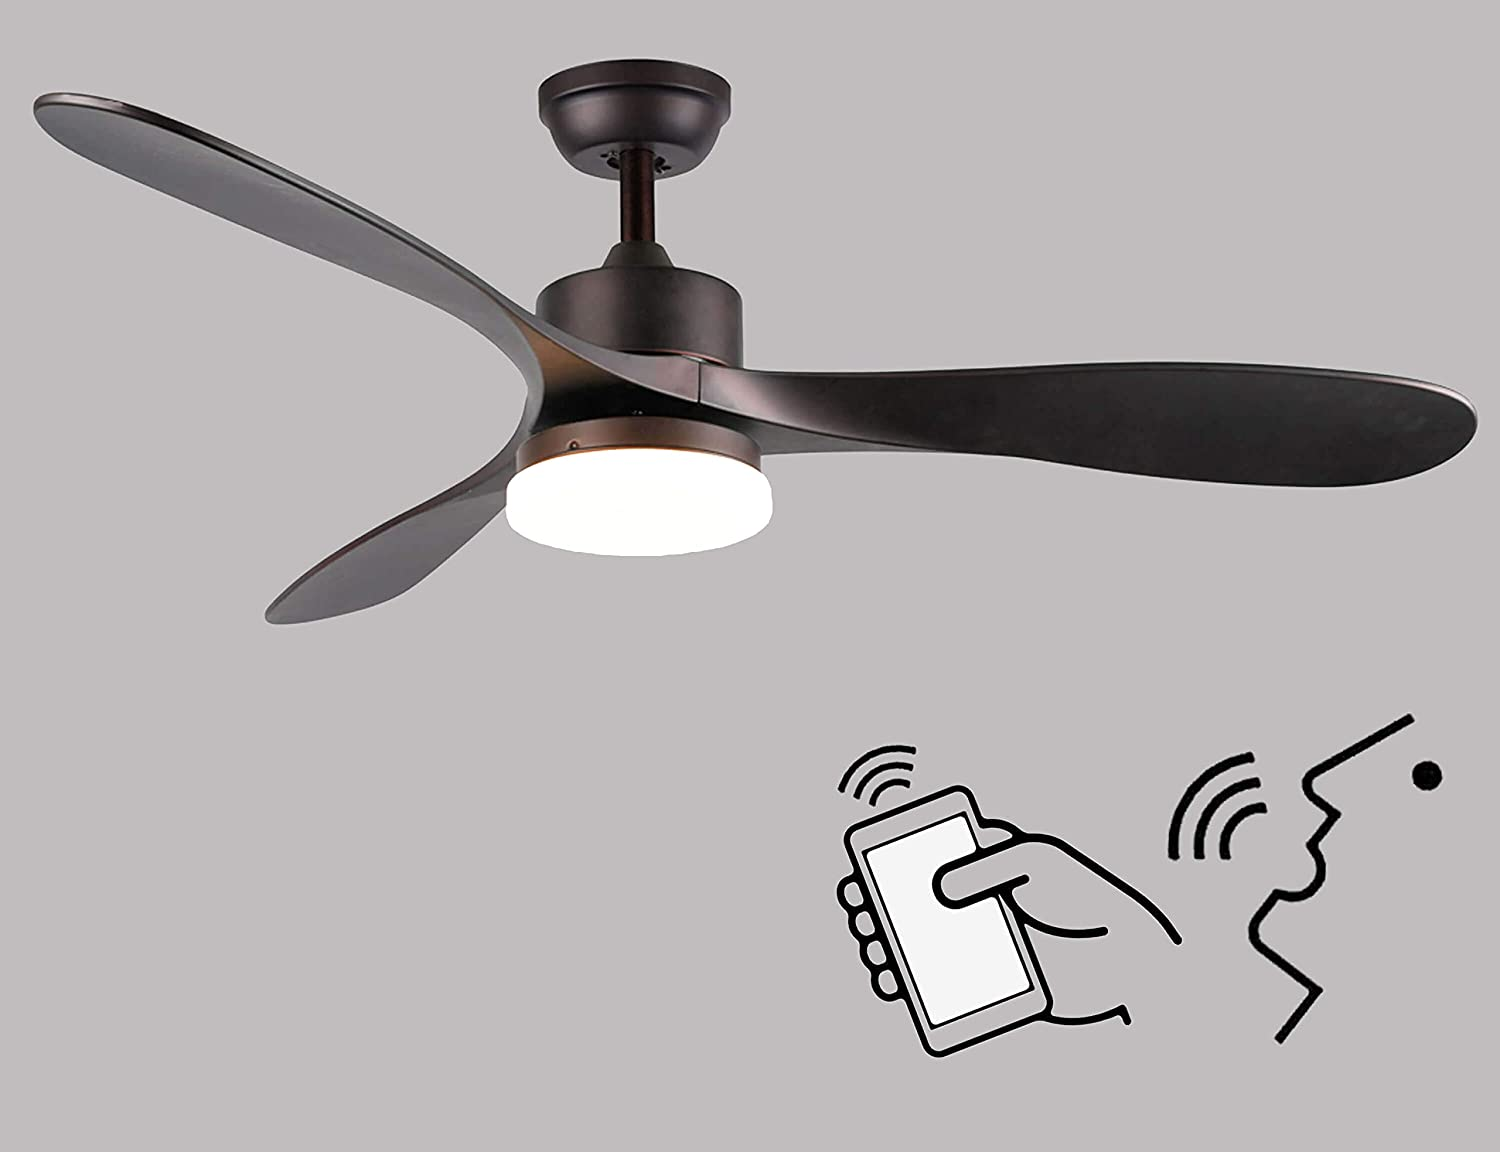 11 Inch Smart Ceiling Fan with Light Work with Alexa and Google Assistant  for Living Room and Bedroom, Dark Brown Finish with LED Daylight and  Acrylic